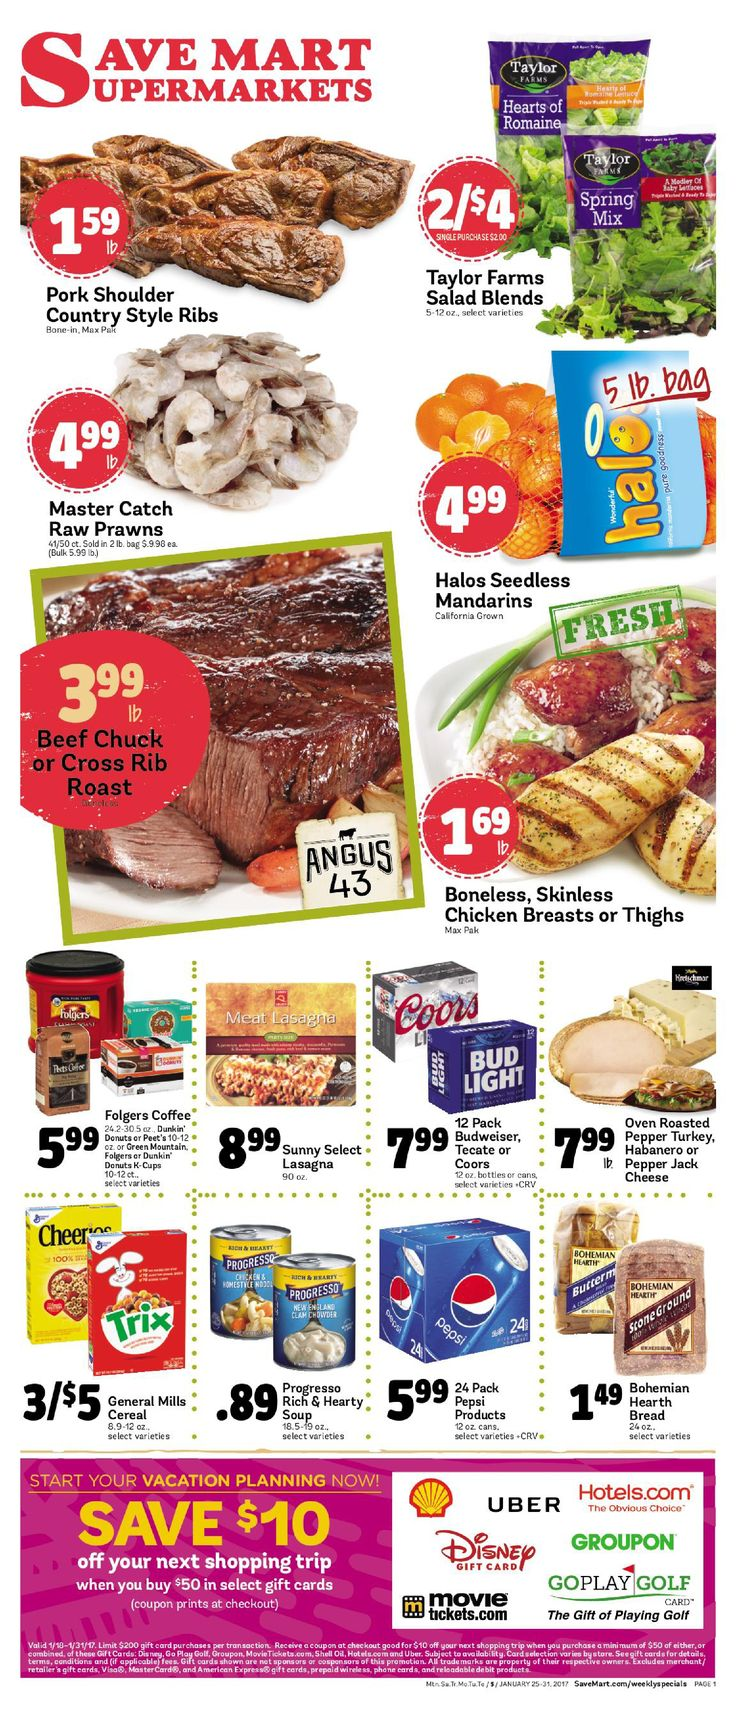 Save Mart Weekly ad January 25 - 31, 2017 - http://www.olcatalog.com/save-mart/save-mart-weekly-ad.html